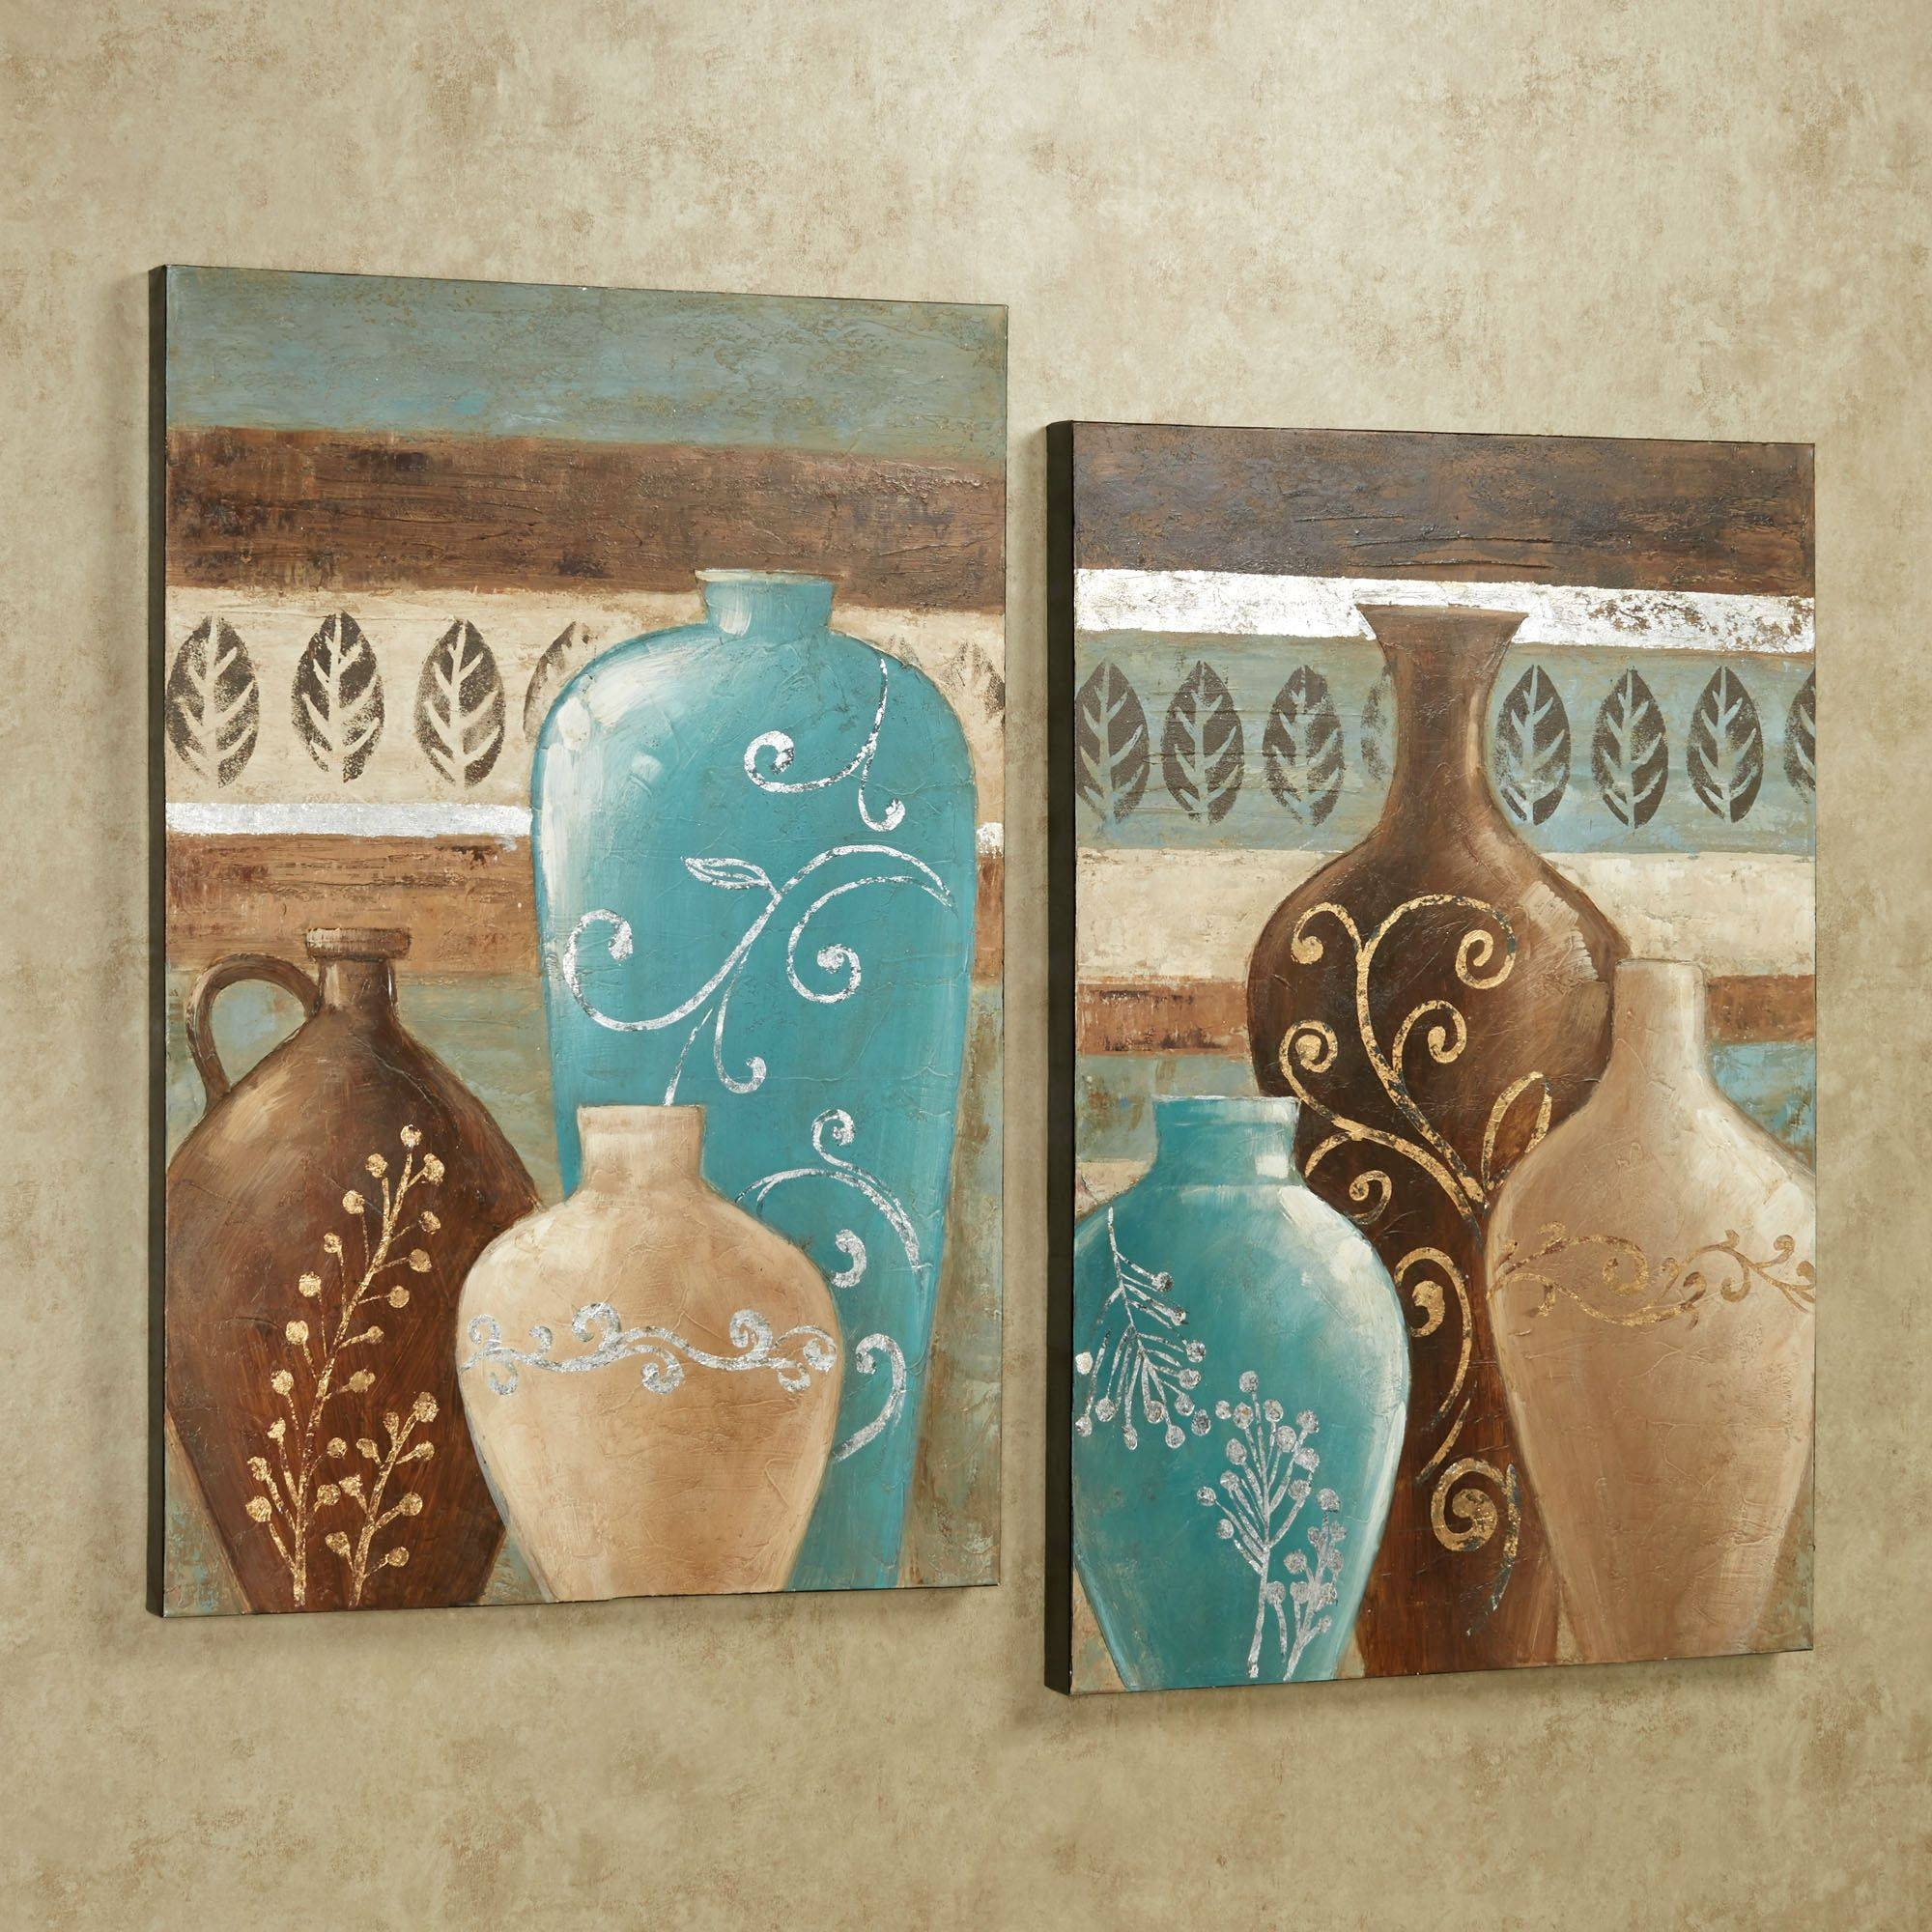 Cream Wall Accents Wayfair Abstract D%c3%a3%c2%a9Cor ~ Loversiq Intended For Most Up To Date Blue And Cream Wall Art (View 7 of 20)